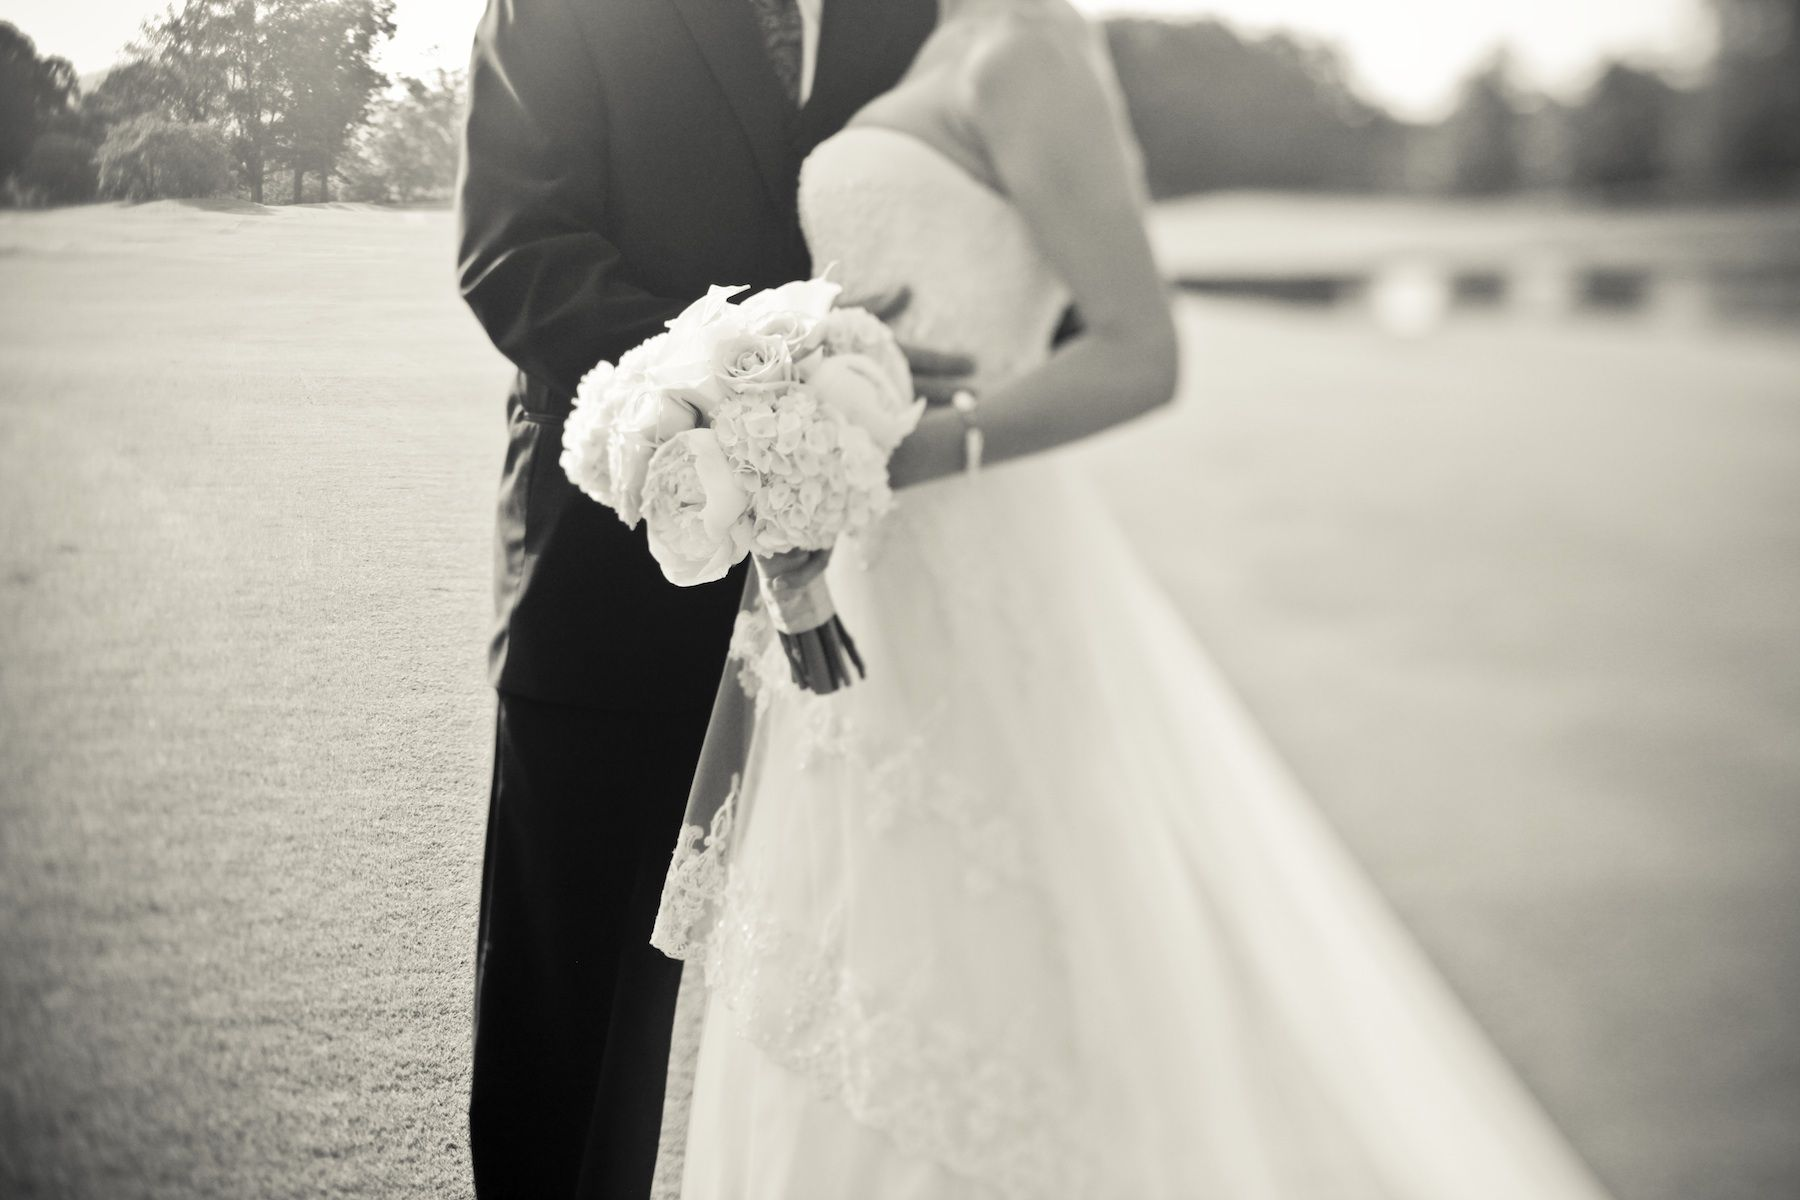 wedding pictures ideas bride and groom | Georgia-wedding-photography ...